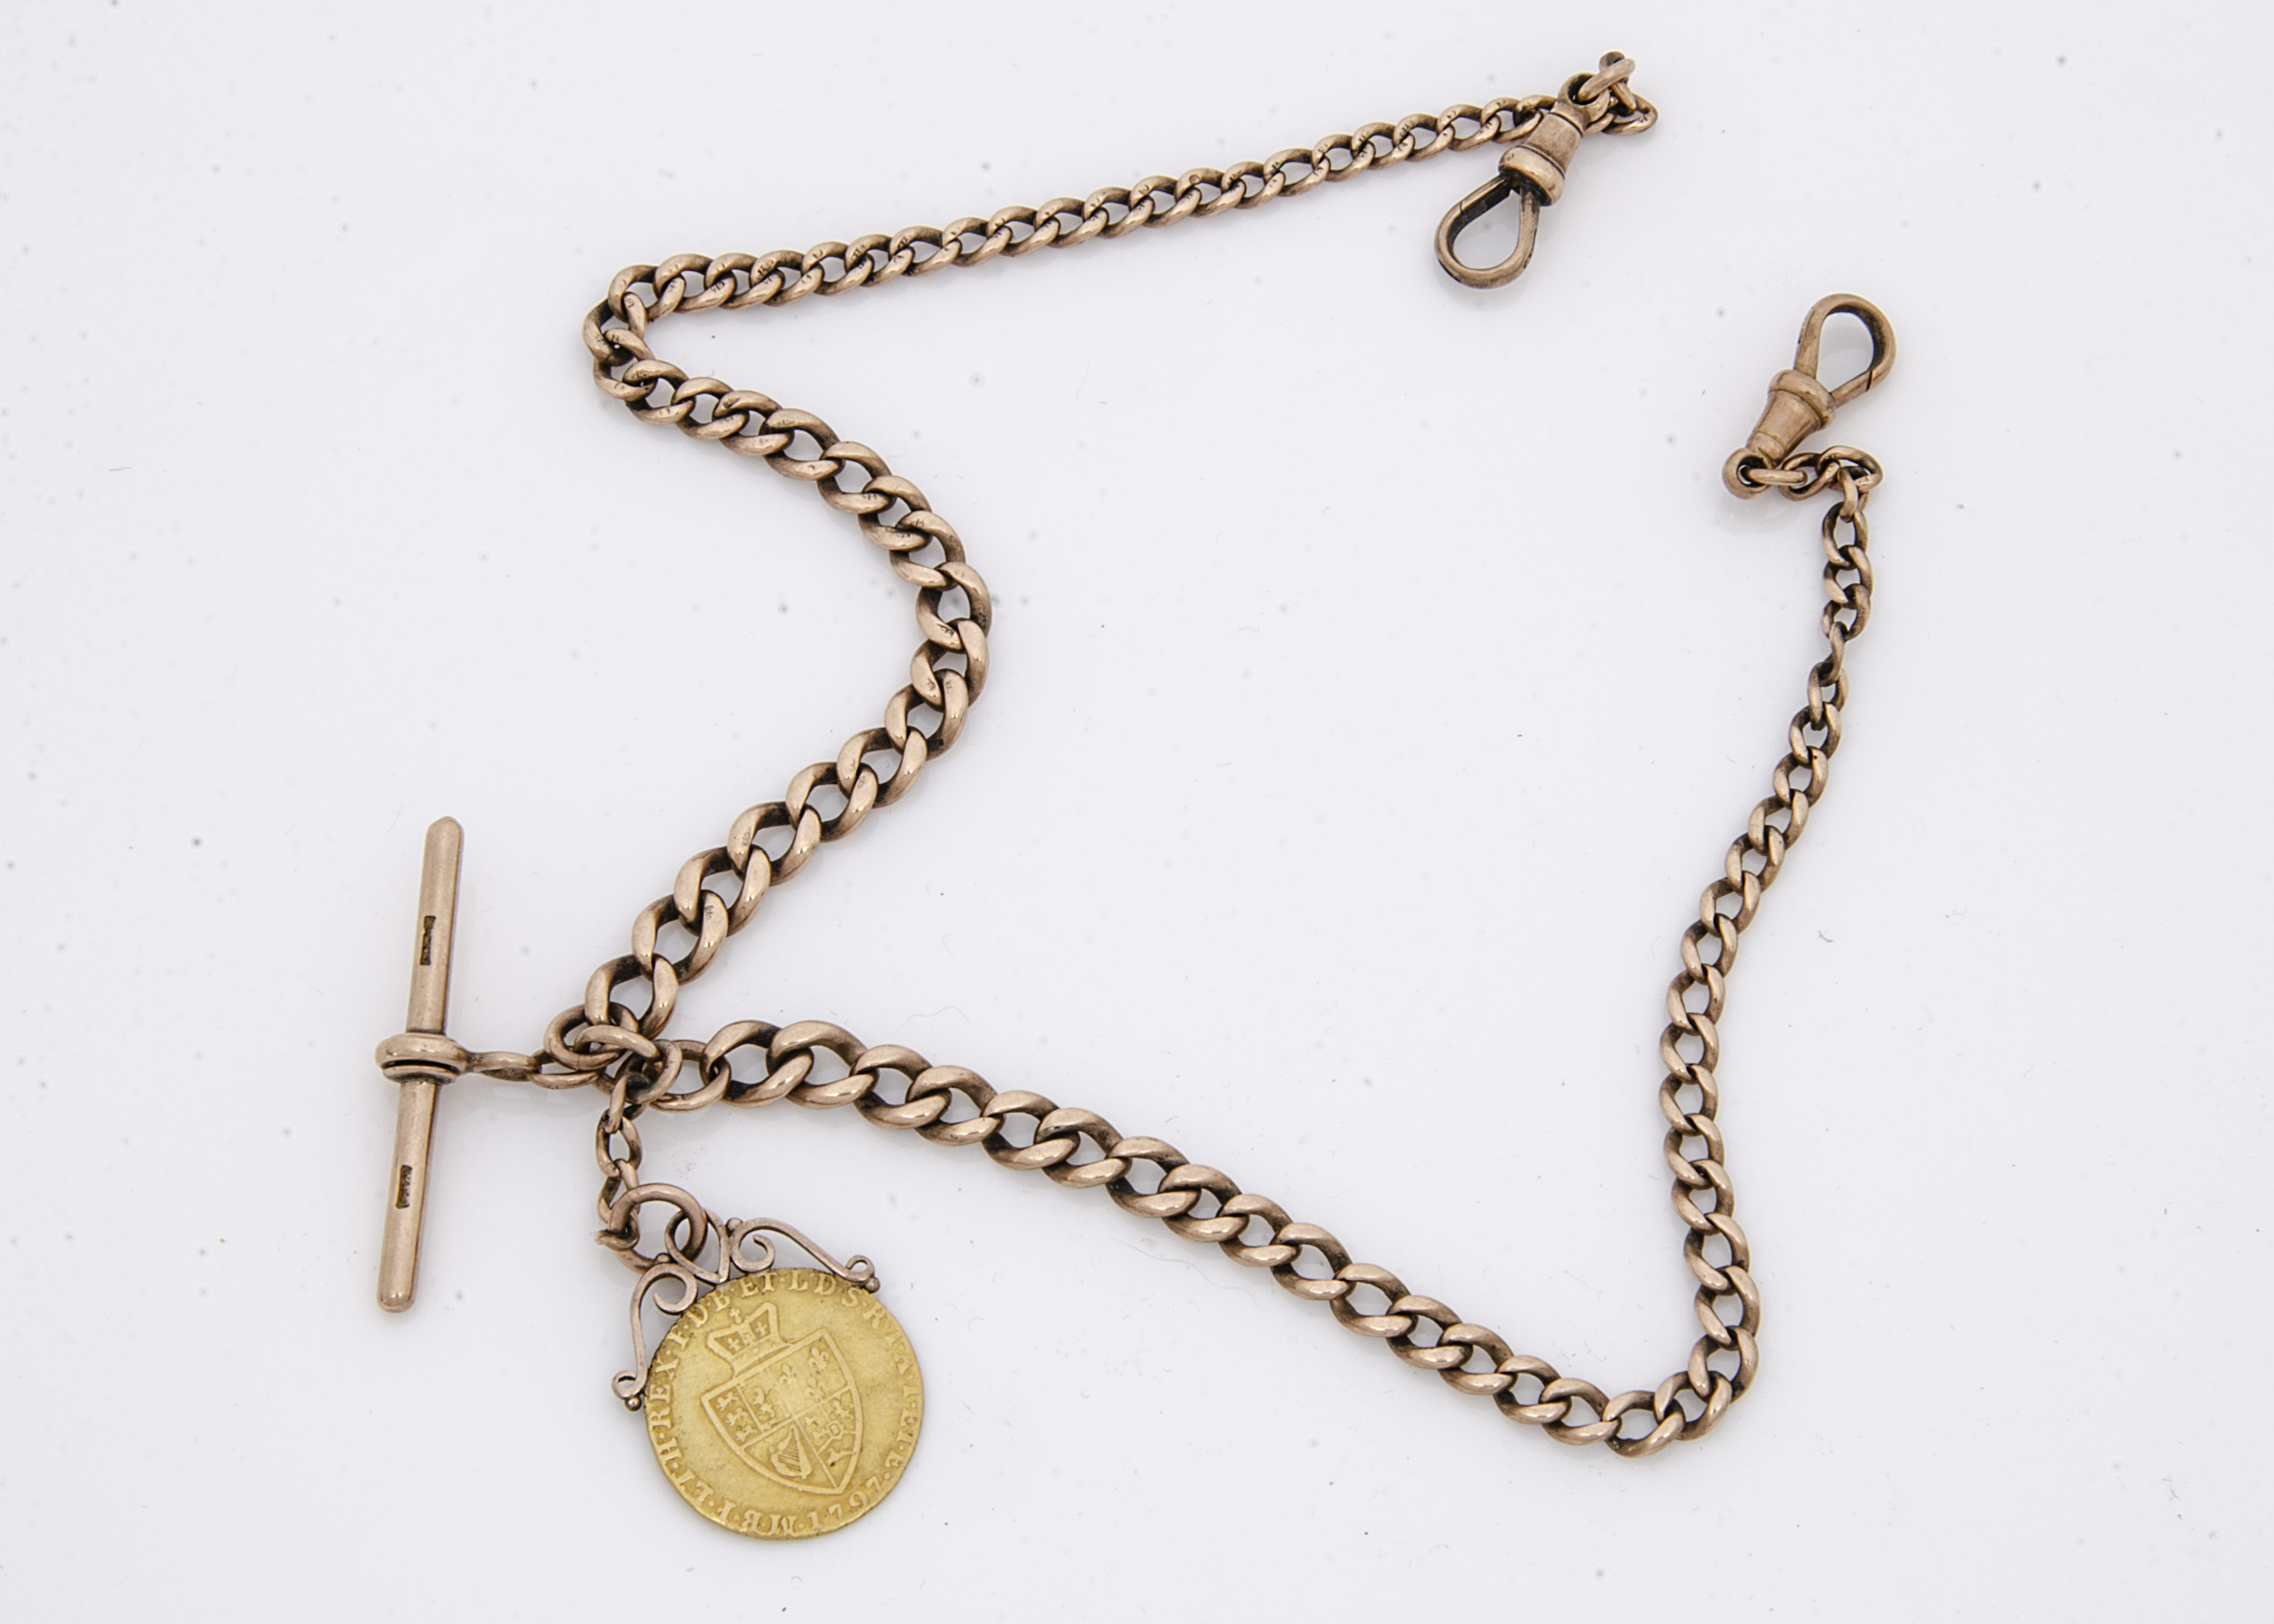 A late Victorian or Edwardian 9ct gold curb link double Albert pocket watch chain, hallmarked, and